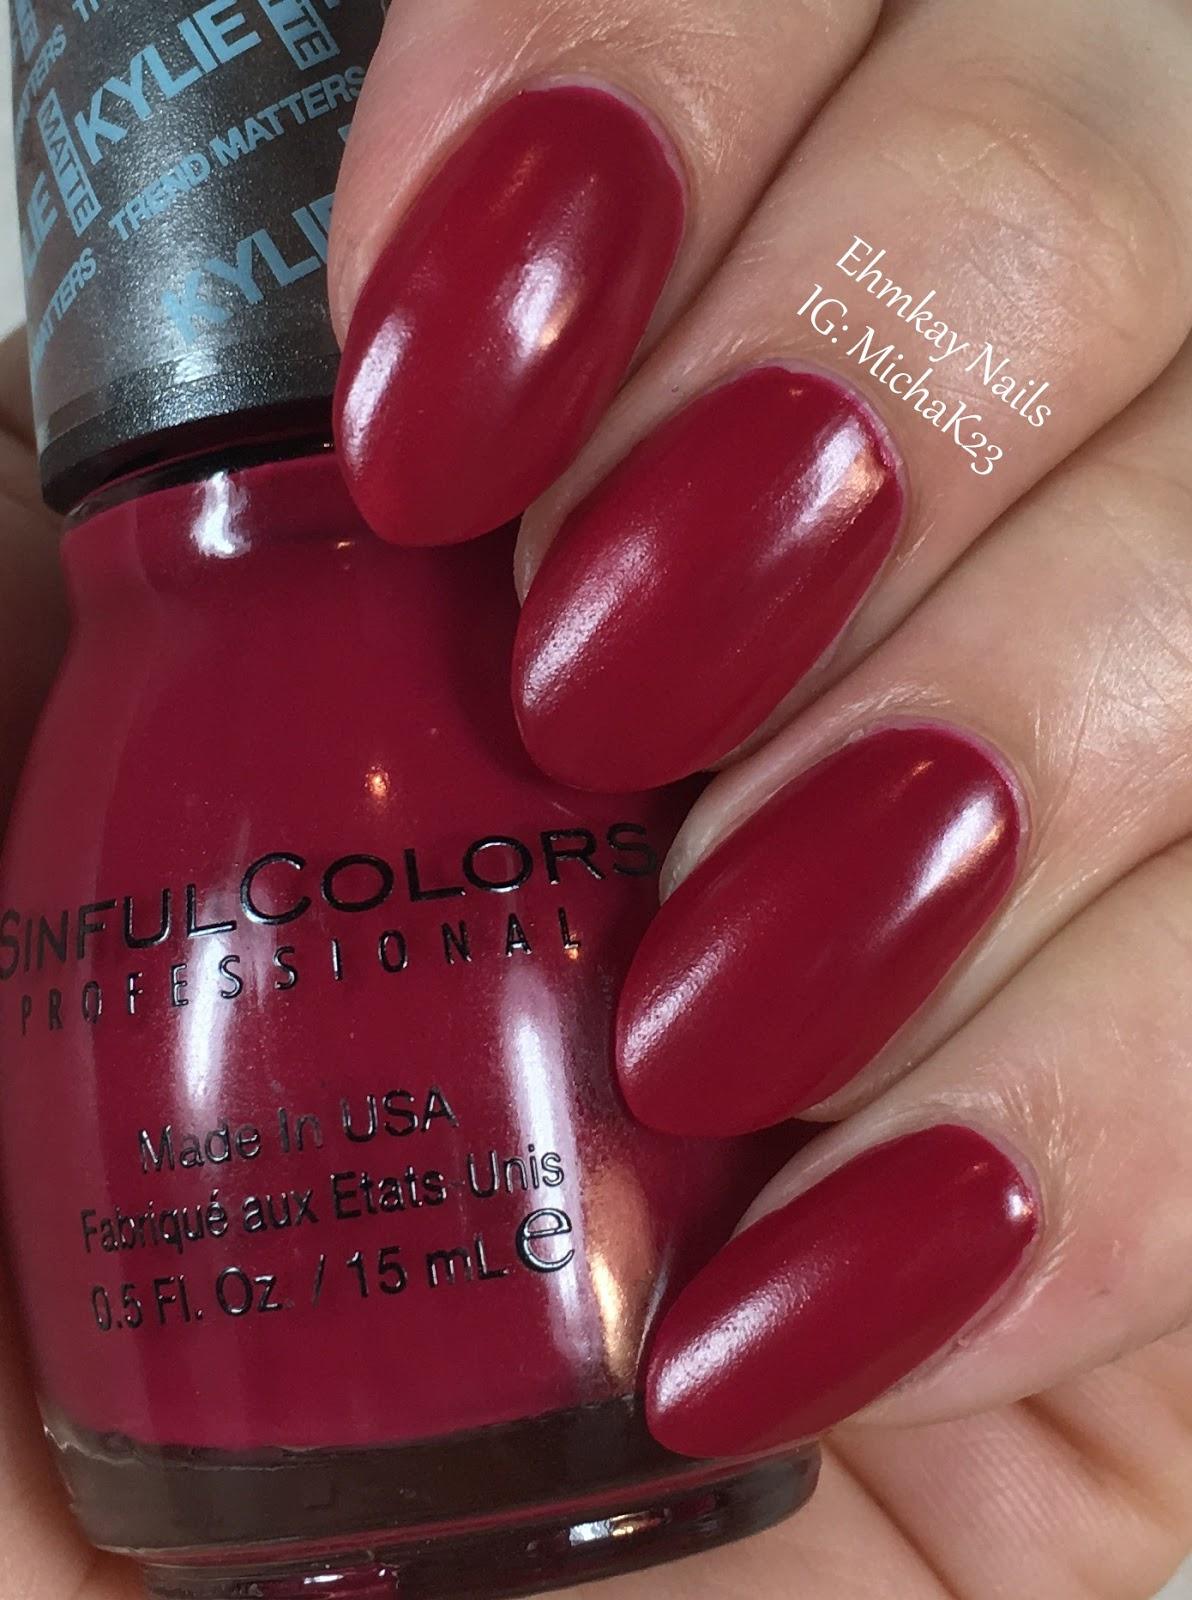 Ehmkay Nails Sinful Colors Kylie Jenner Trend Matters Pure Satin Matte Collection Partial Review